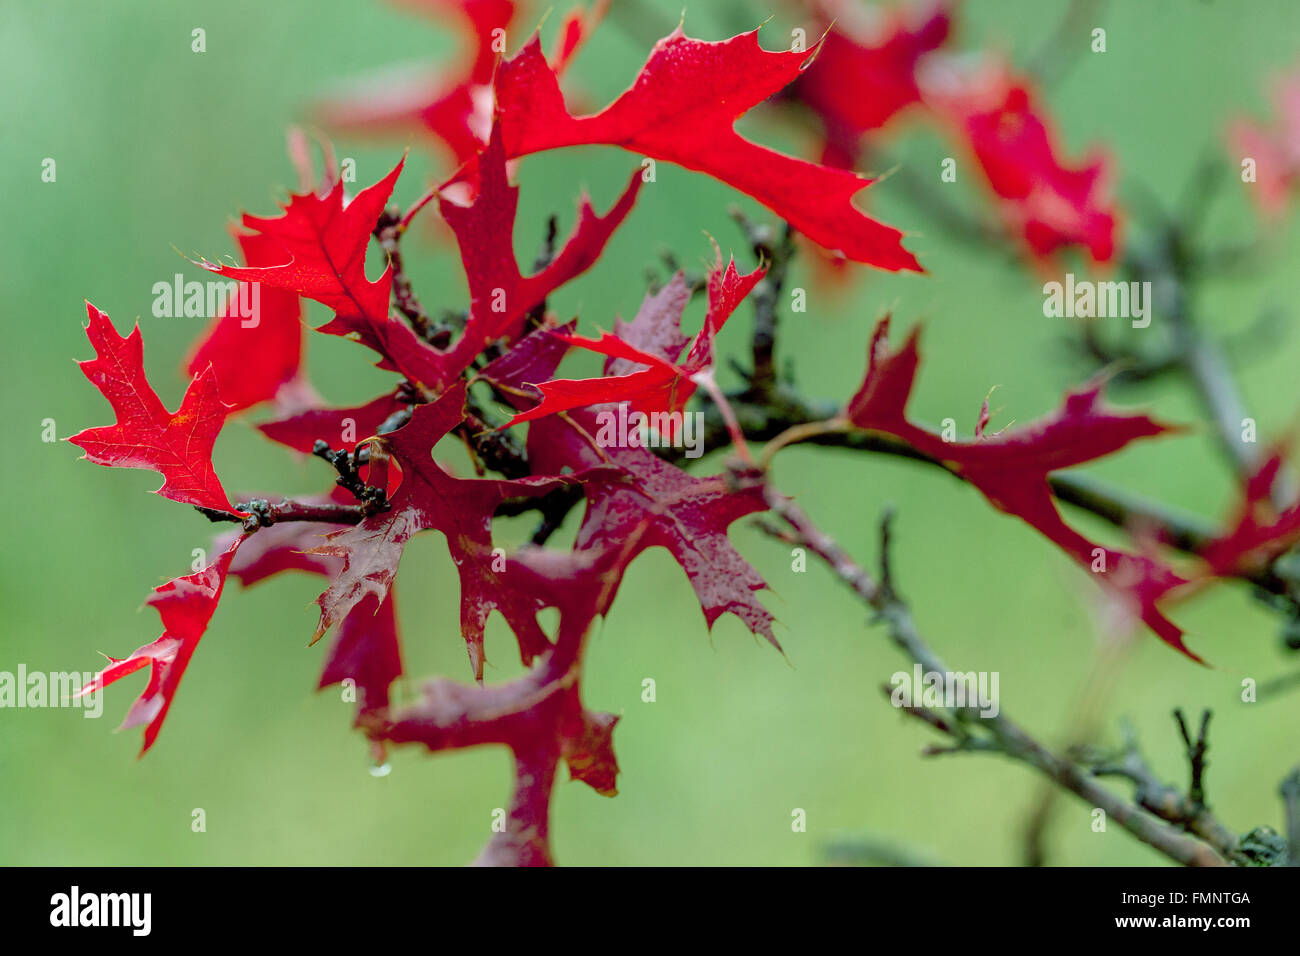 Quercus palustris 'Swamp Pygmy' red autumn leaves - Stock Image